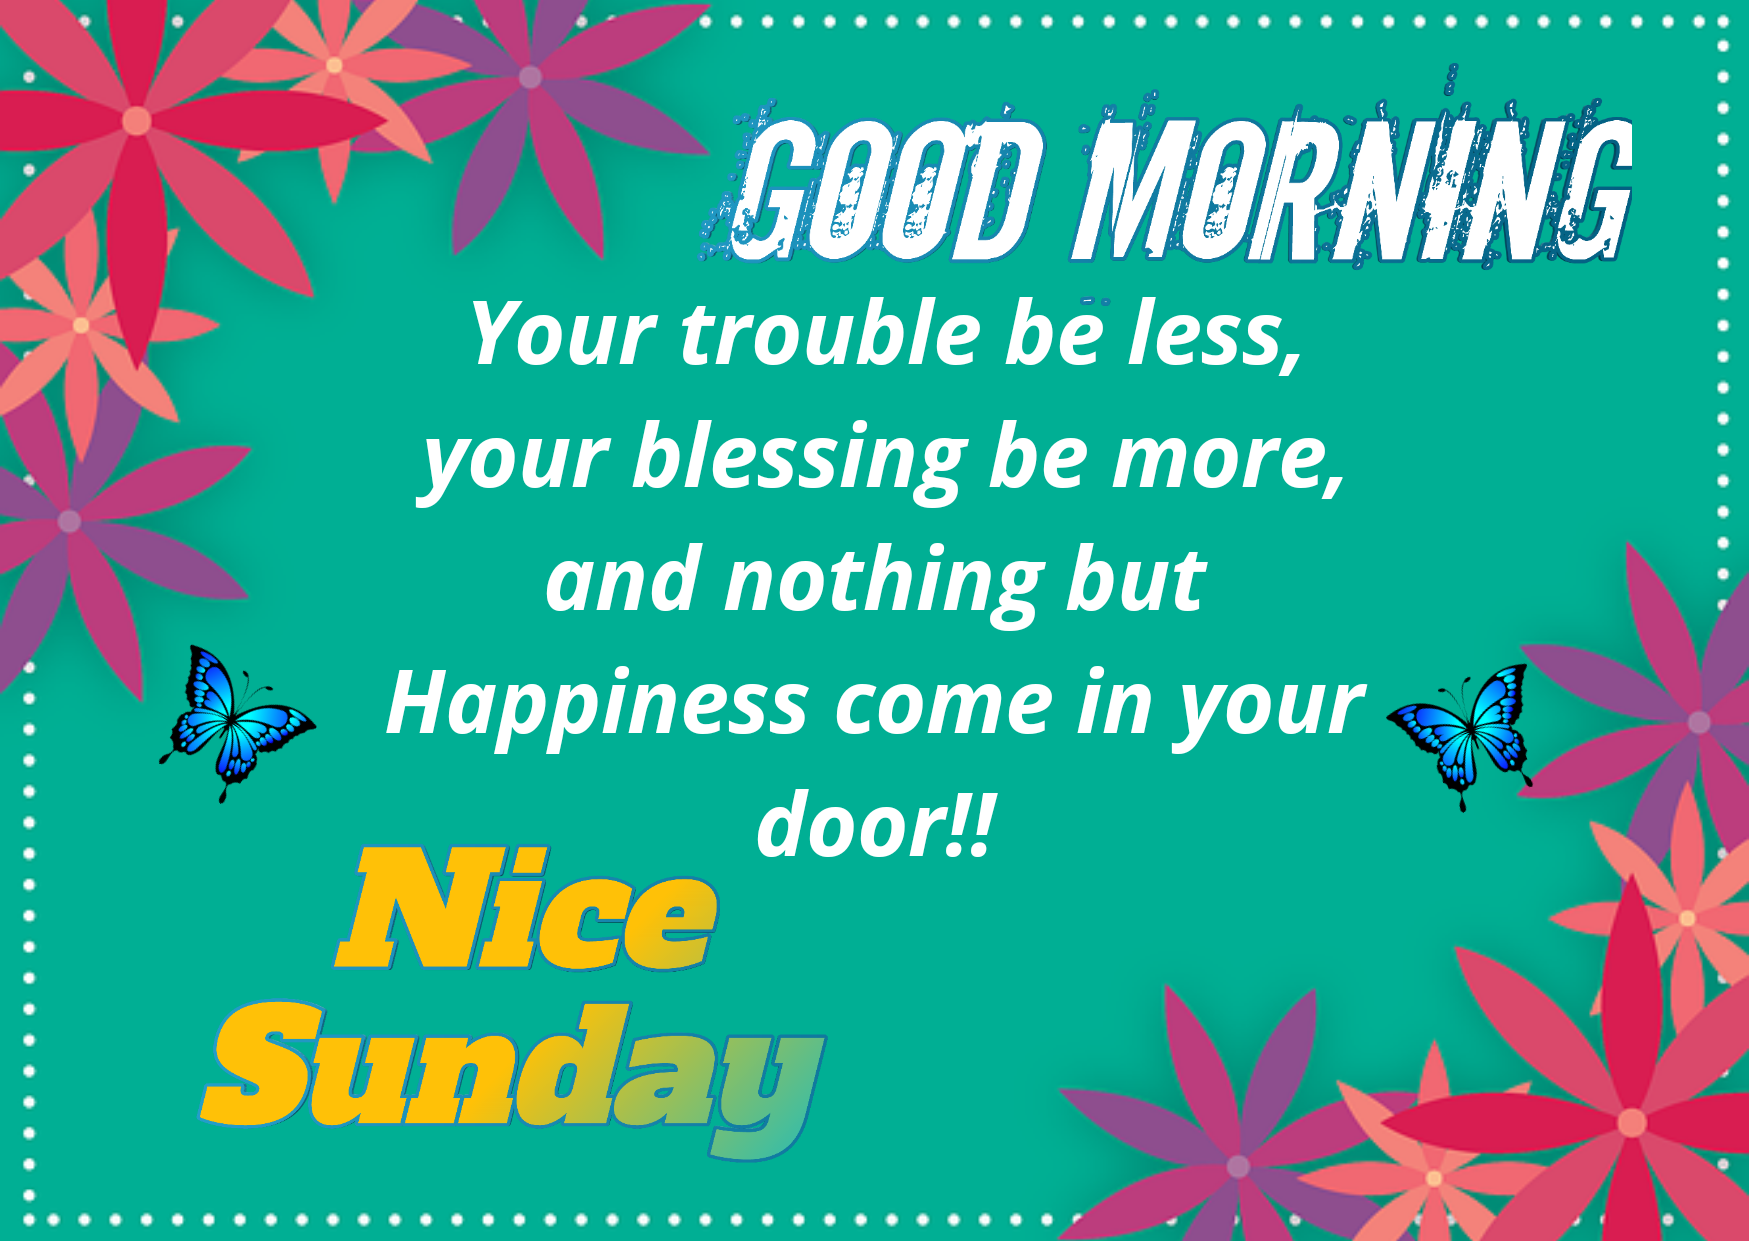 Happy Sunday  Wishes, Images, Wallpaper, Quotes, For Whatsapp, Free download,